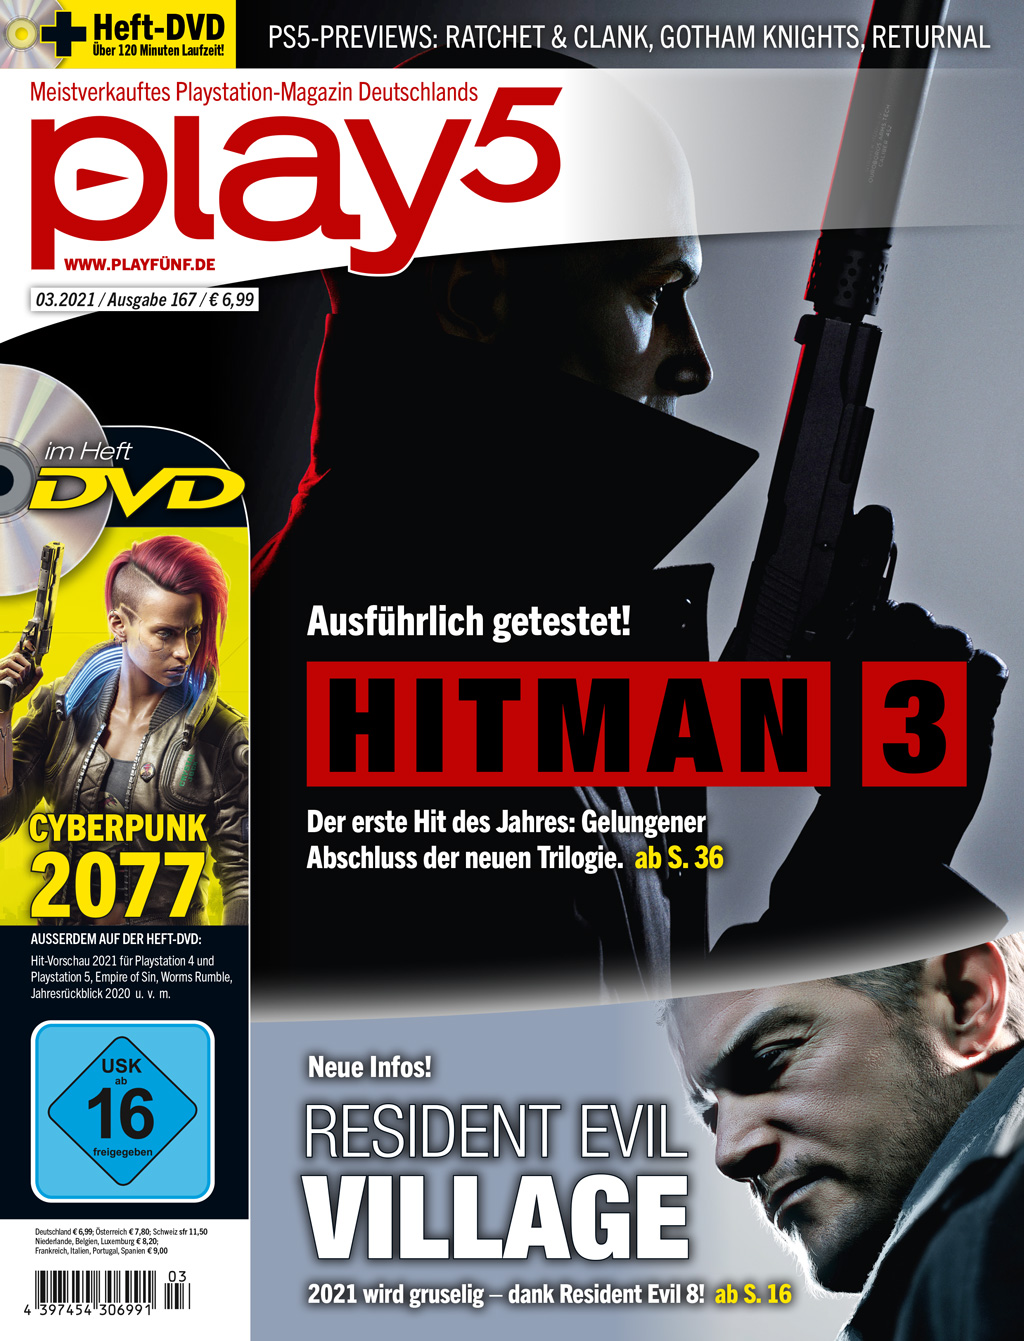 play5 03/21 with test of Hitman 3, preview of Resident Evil: Village